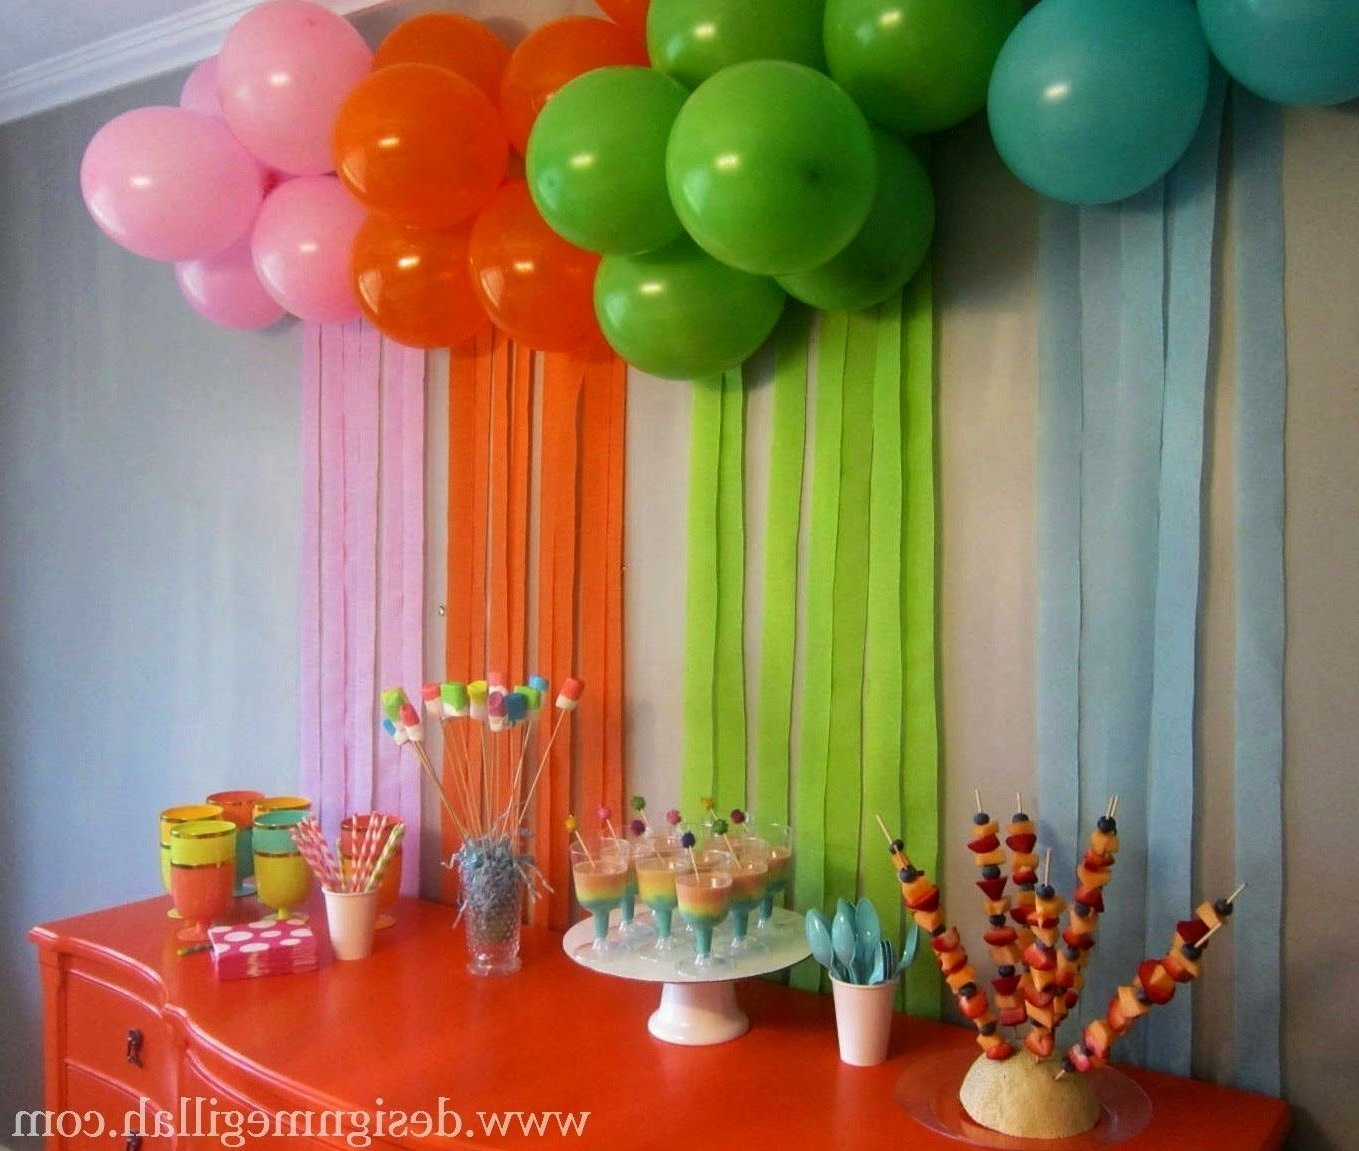 10 Gorgeous Birthday Ideas For 3 Year Old Boy Party At Home